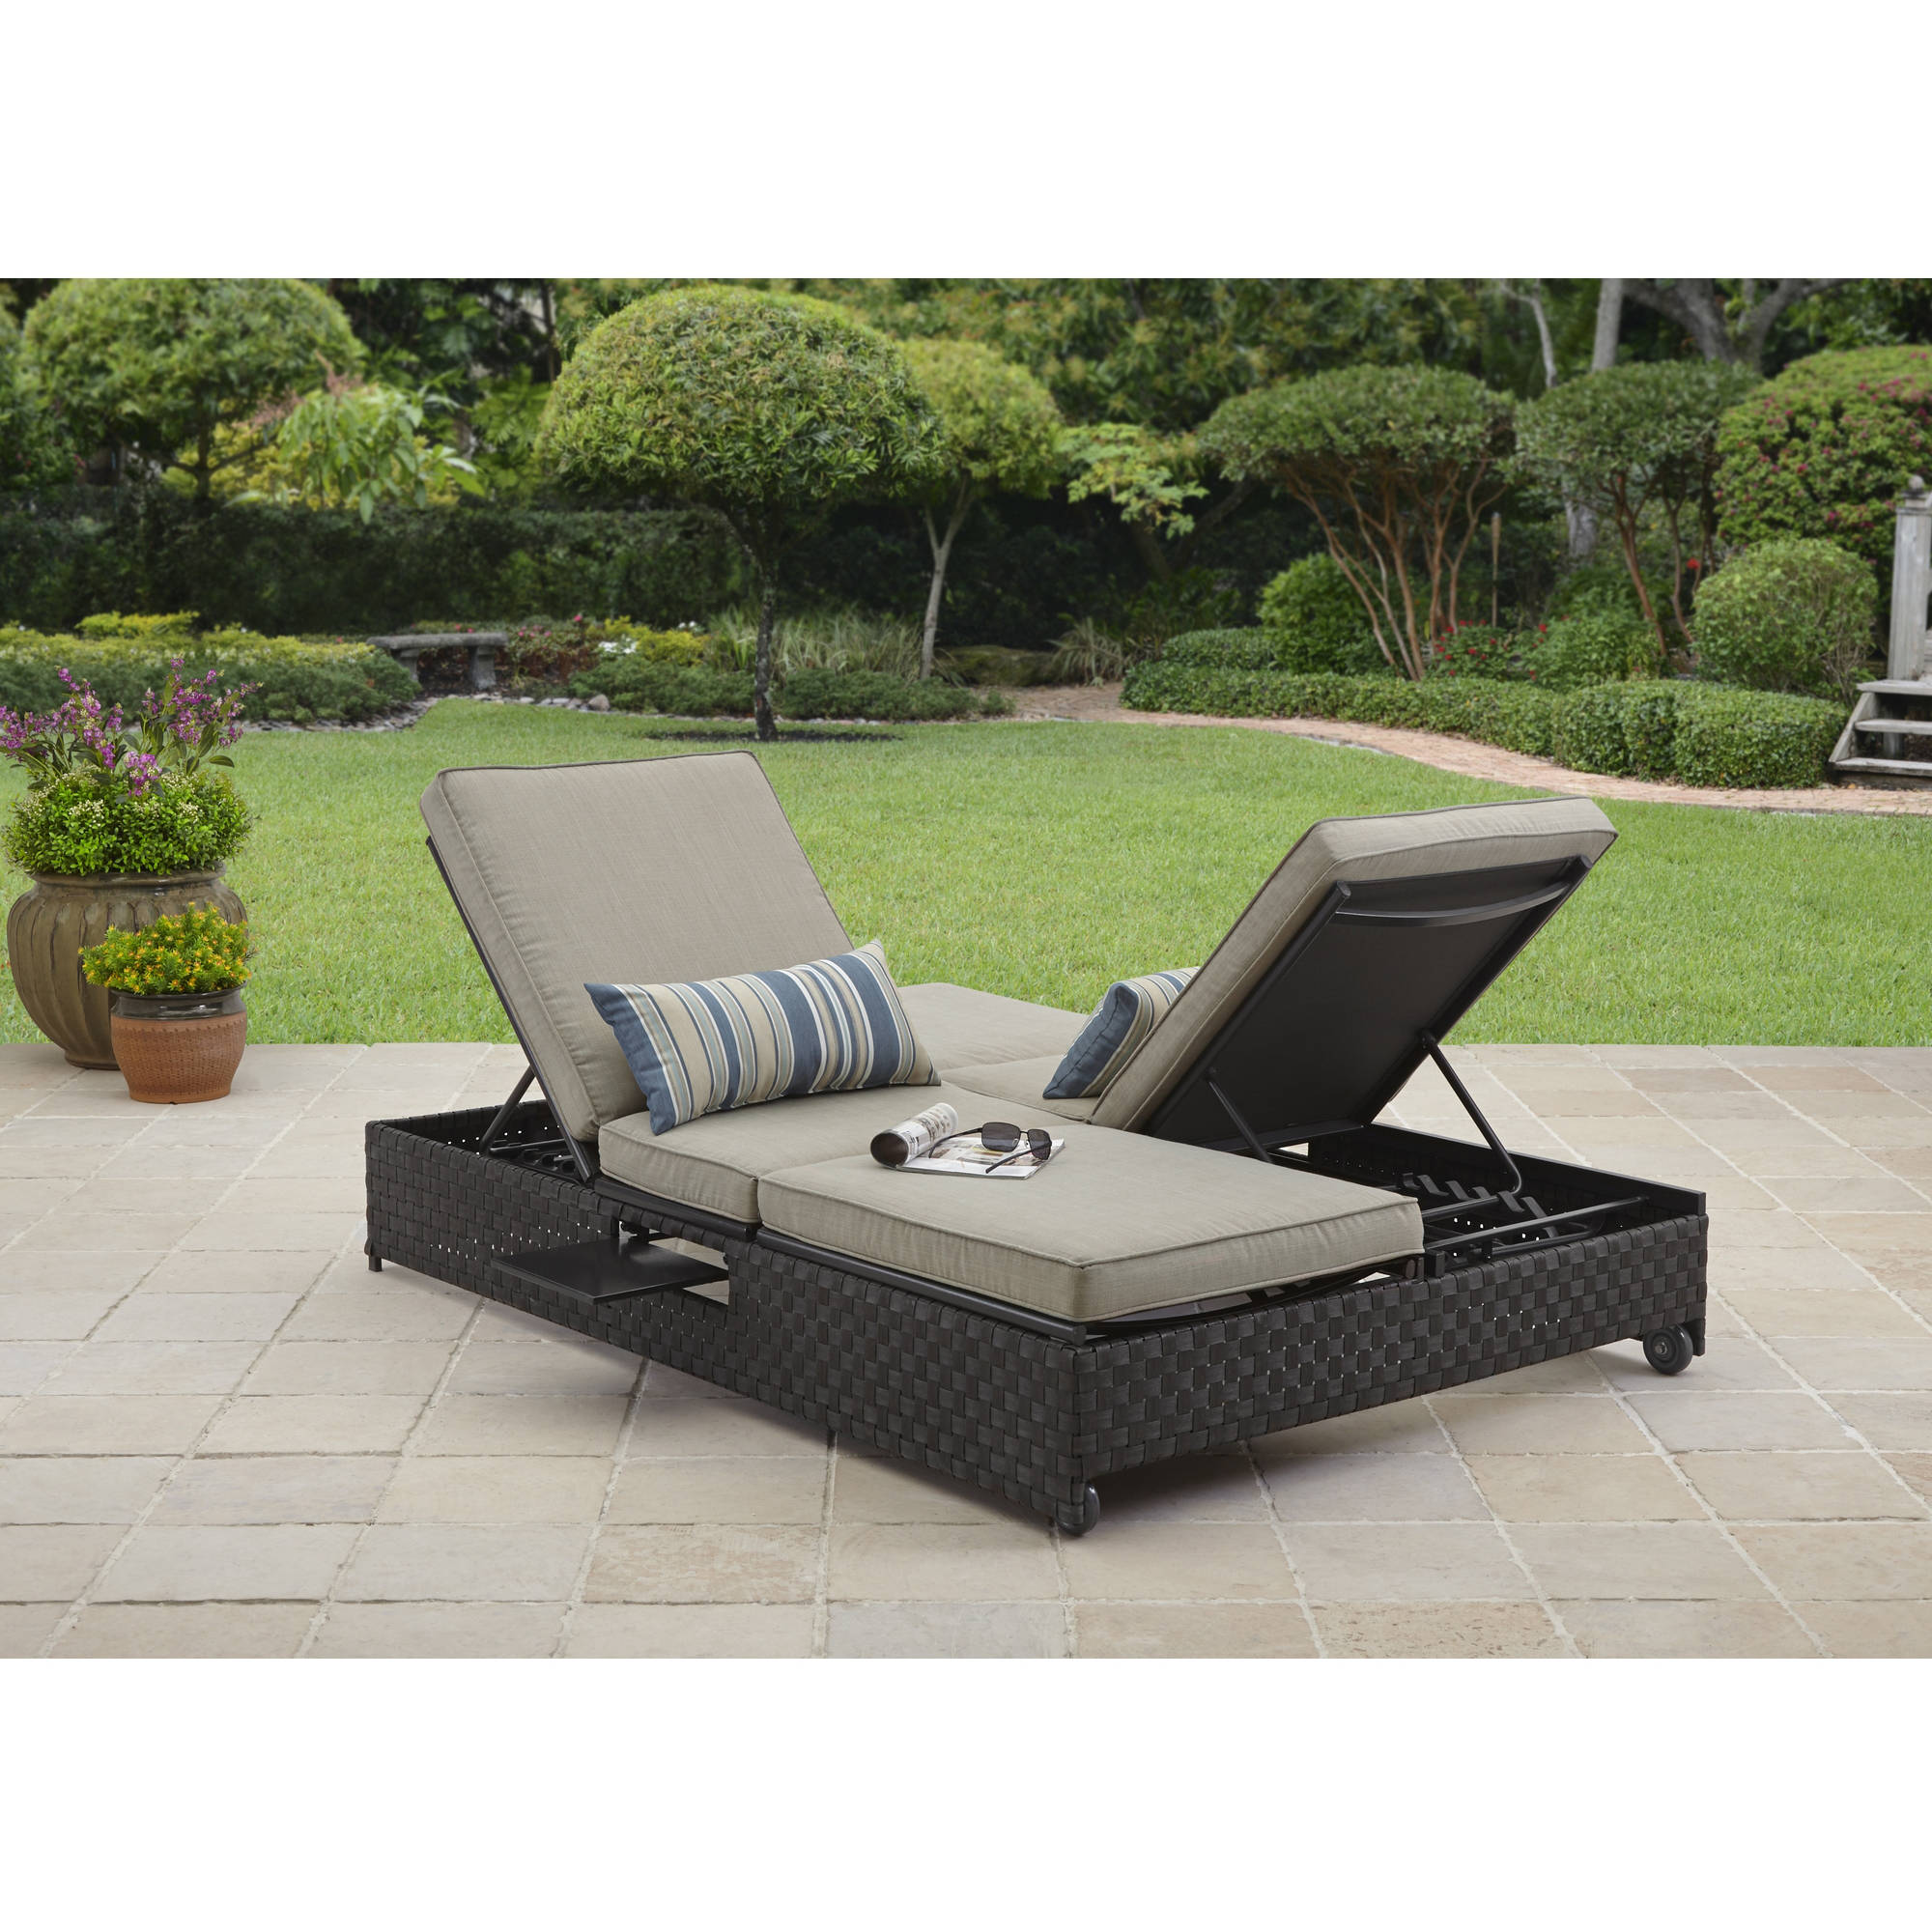 . Better Homes and Gardens Avila Beach Double Lounger Sofa   Walmart com